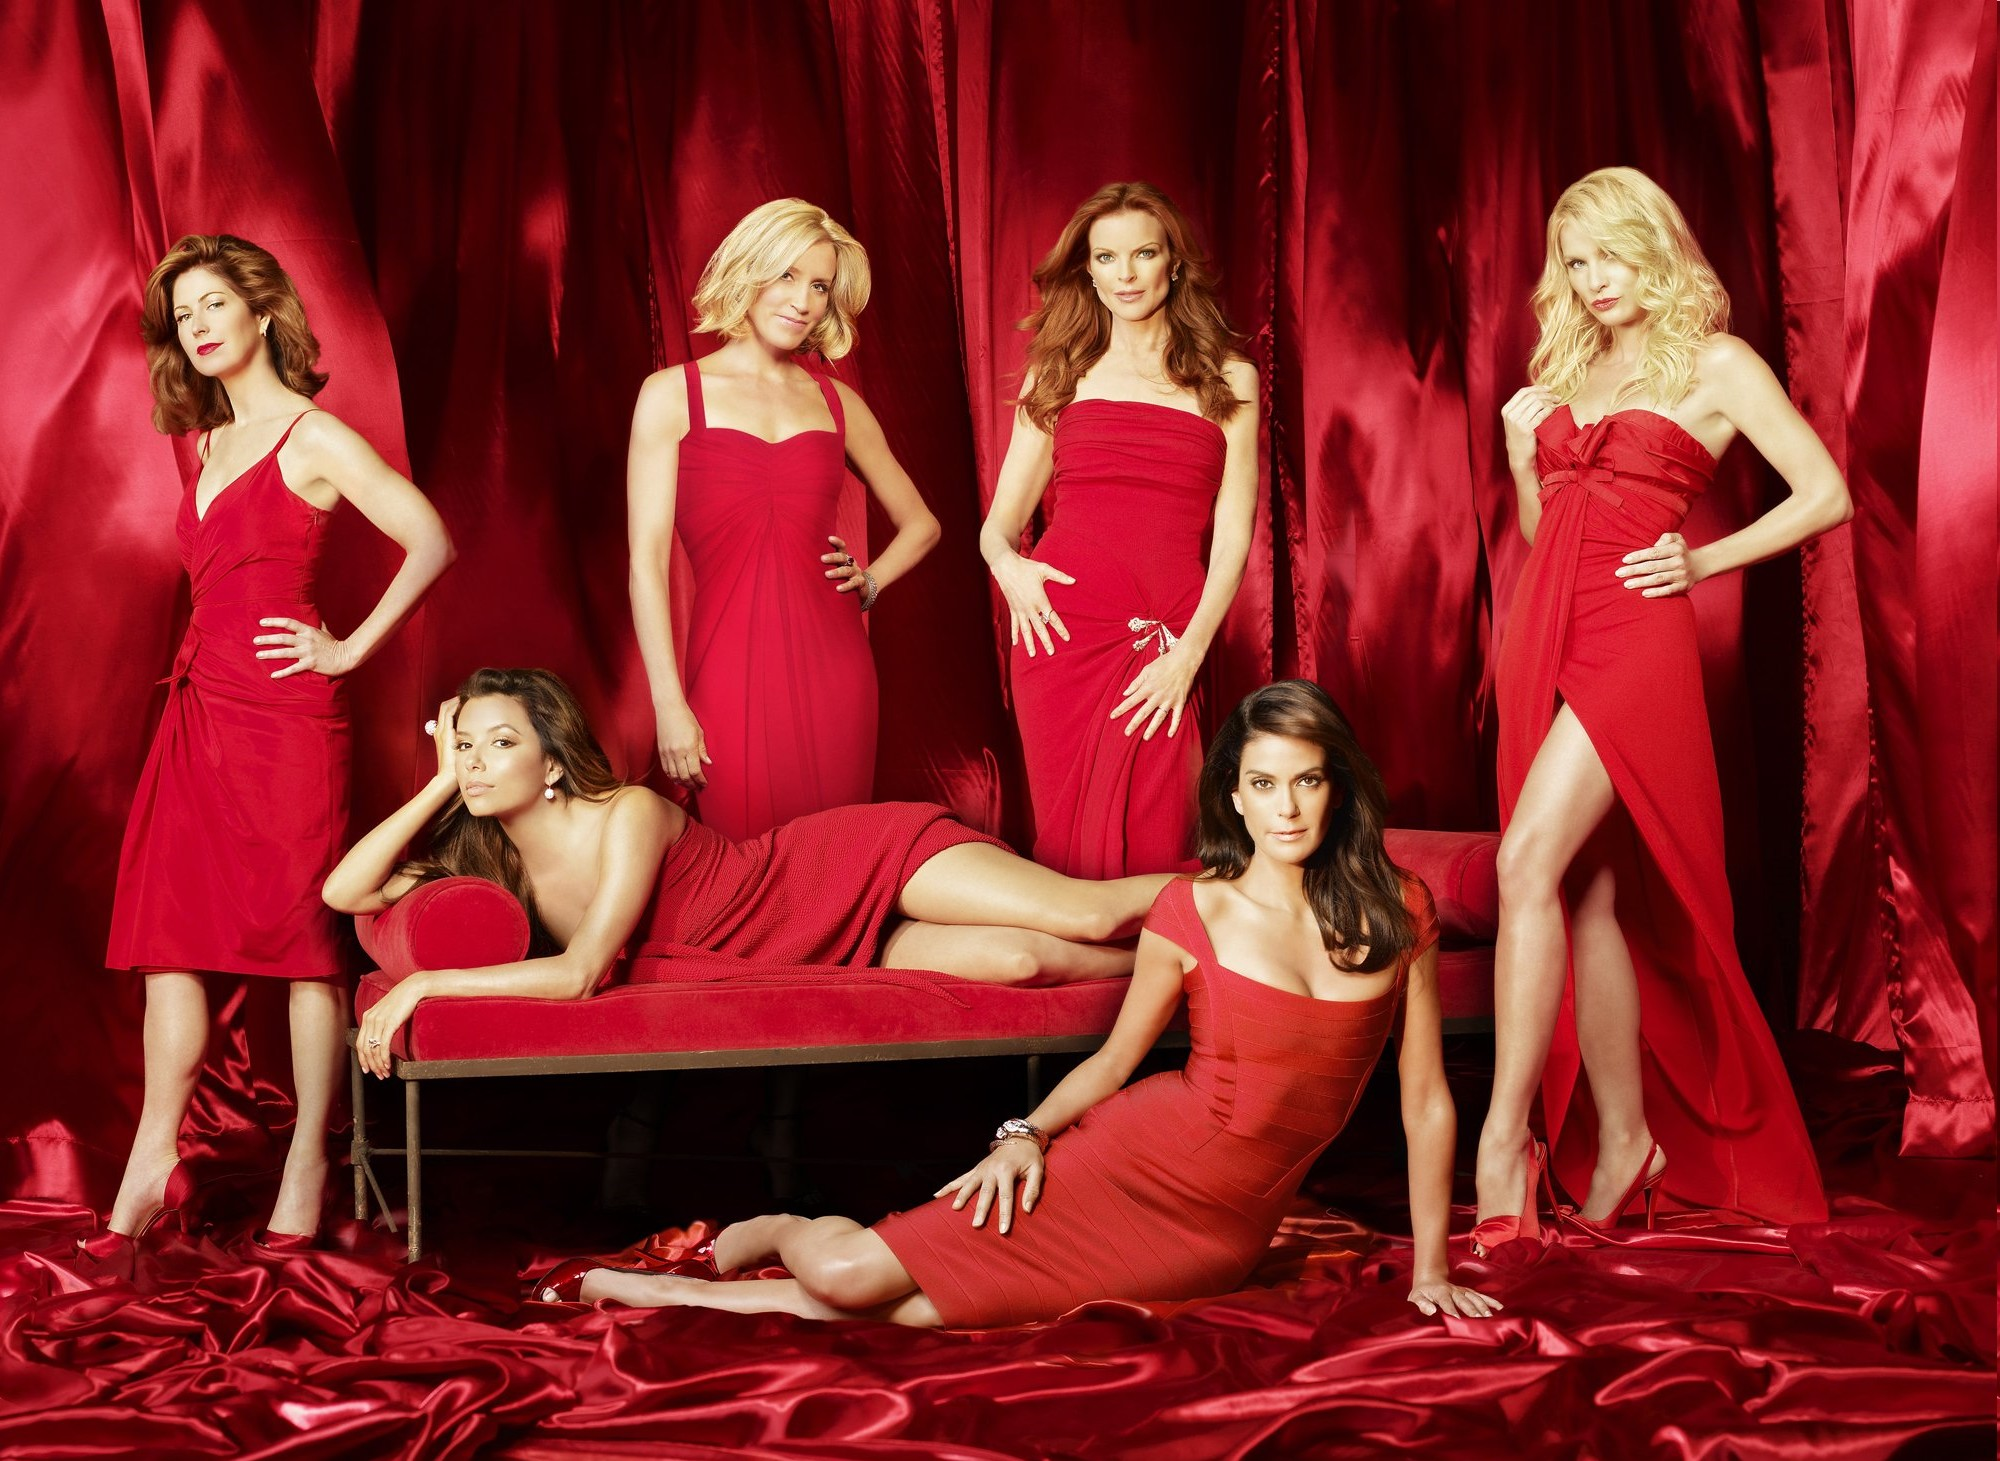 television-focus-sur-la-beaute-dans-les-series-desperate-housewives